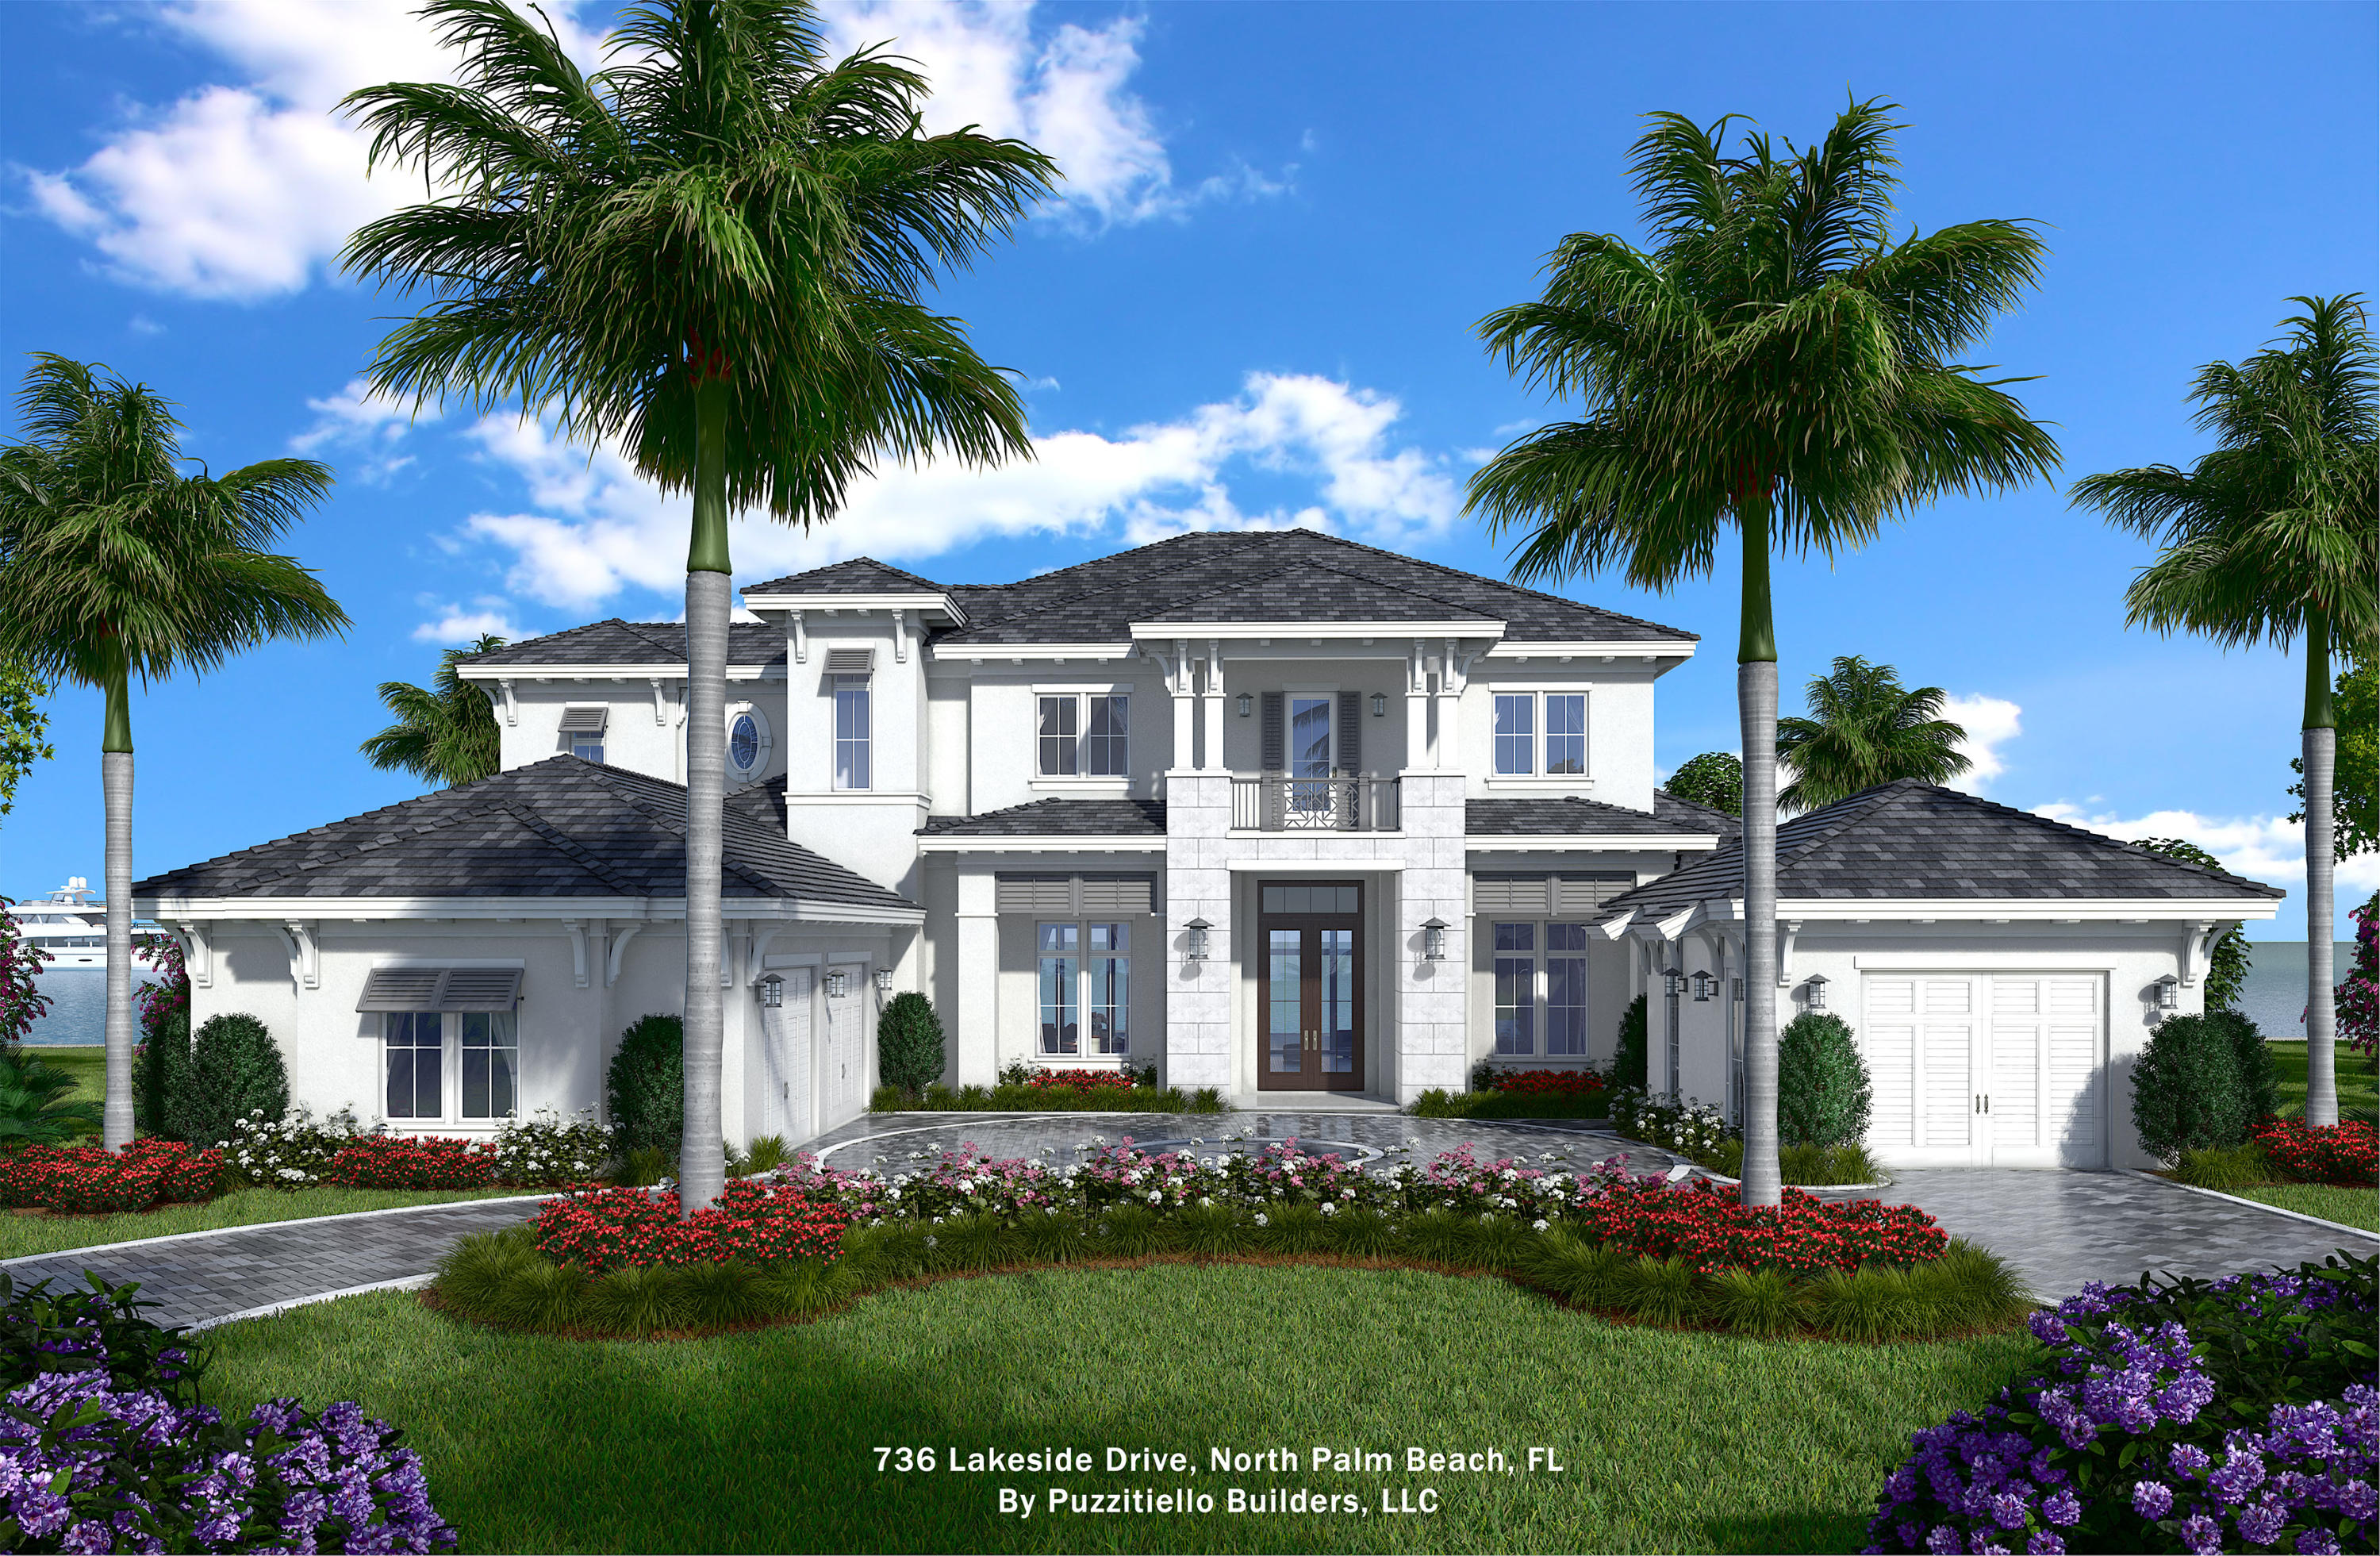 736 Lakeside Drive, North Palm Beach, Florida 33408, 4 Bedrooms Bedrooms, ,4.1 BathroomsBathrooms,A,Single family,Lakeside,RX-10368568